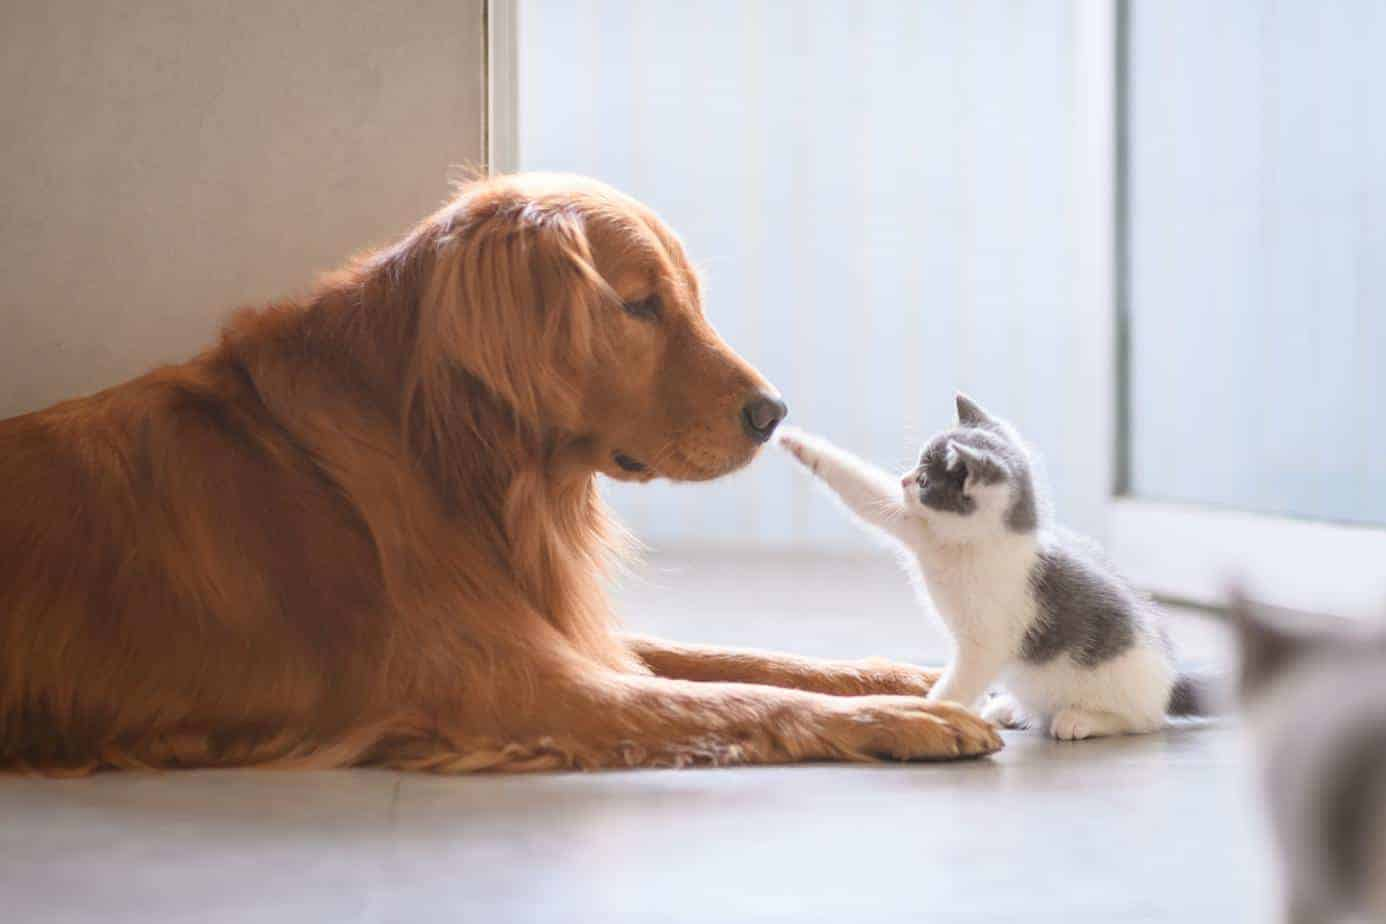 Golden retriever meets kitten. Train dog and cat to live peacefully together.